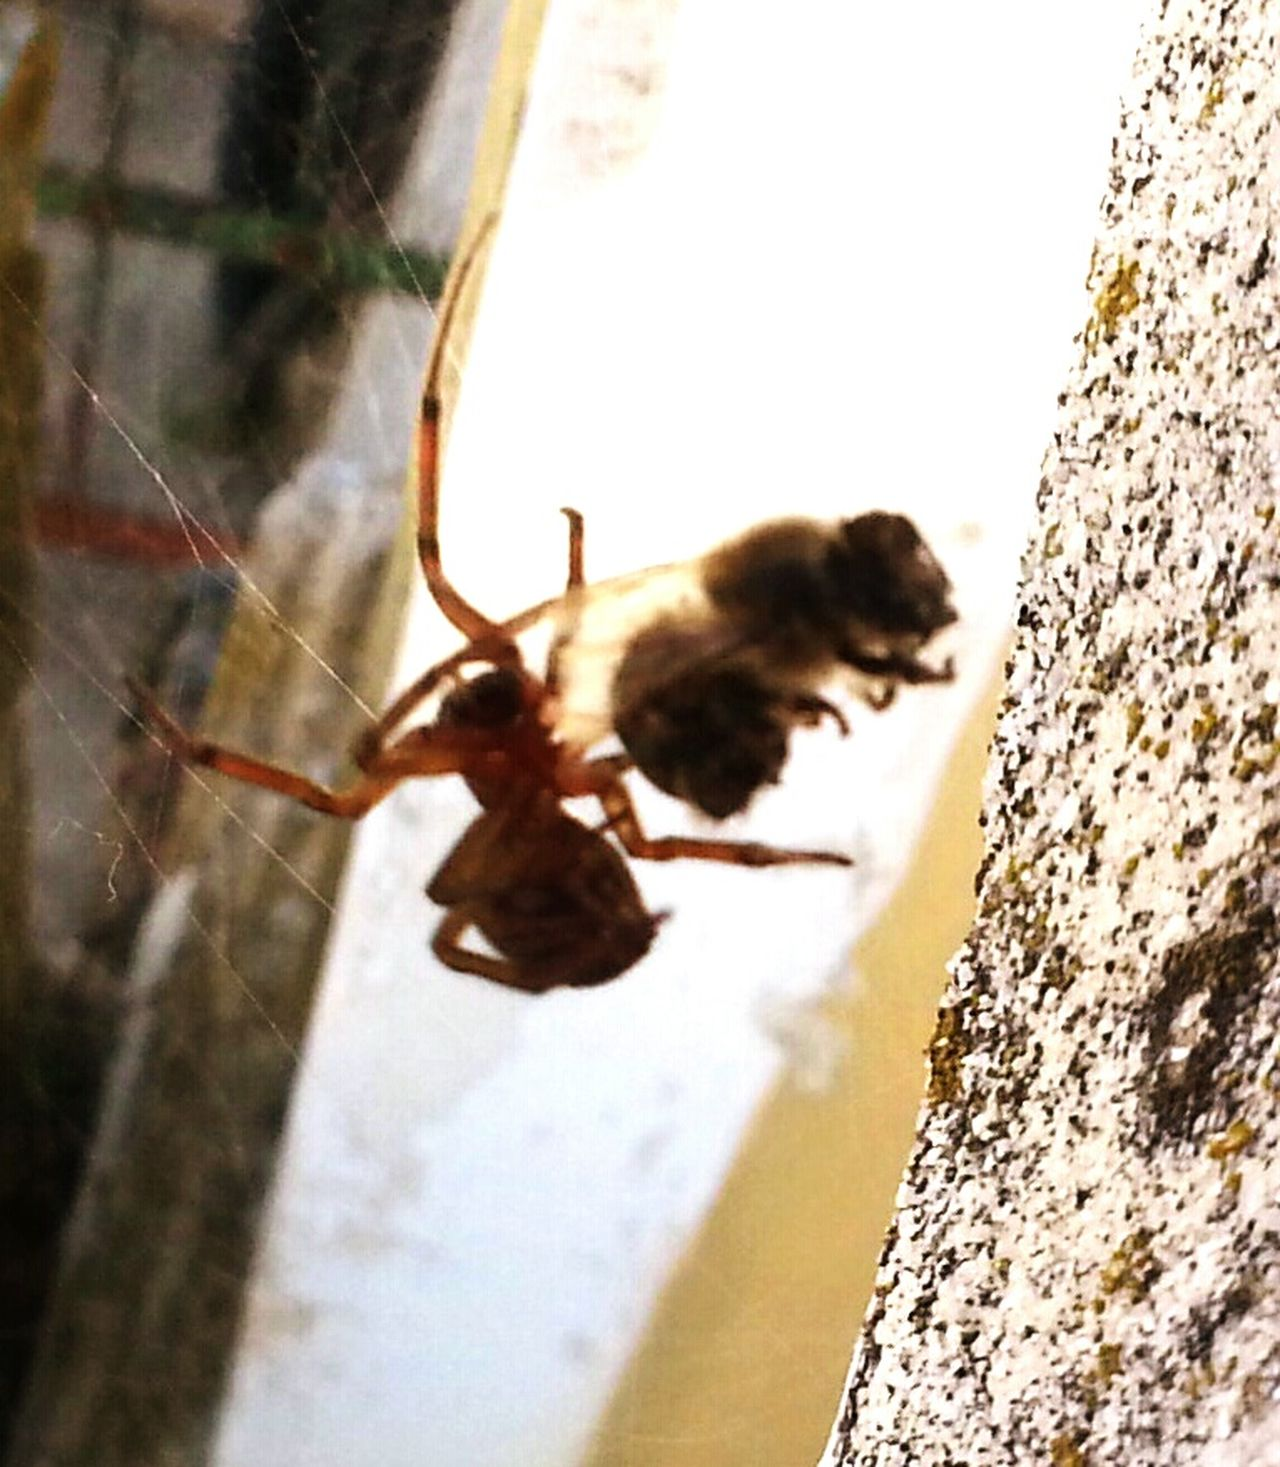 Hello World Check This Out Hanging Out Open Edit For Everyone Estepona Fotography Smartphone Photography Nature Photography Spinne Und Biene National Geographic Insect Photography